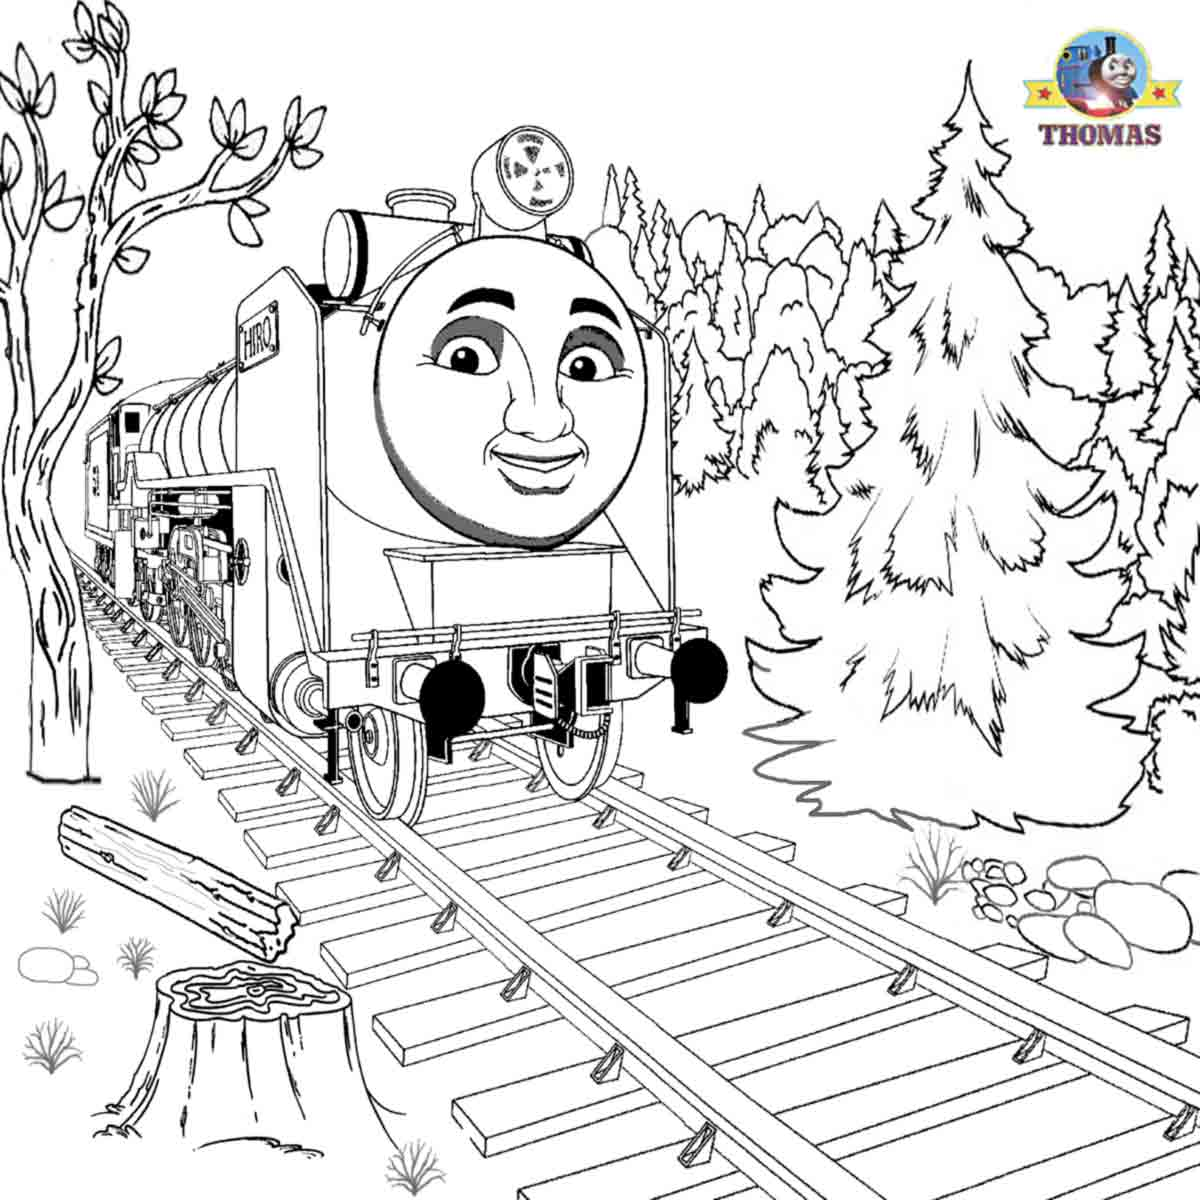 thomas and friends drawing pages free coloring pages for boys worksheets thomas the train friends thomas pages and drawing